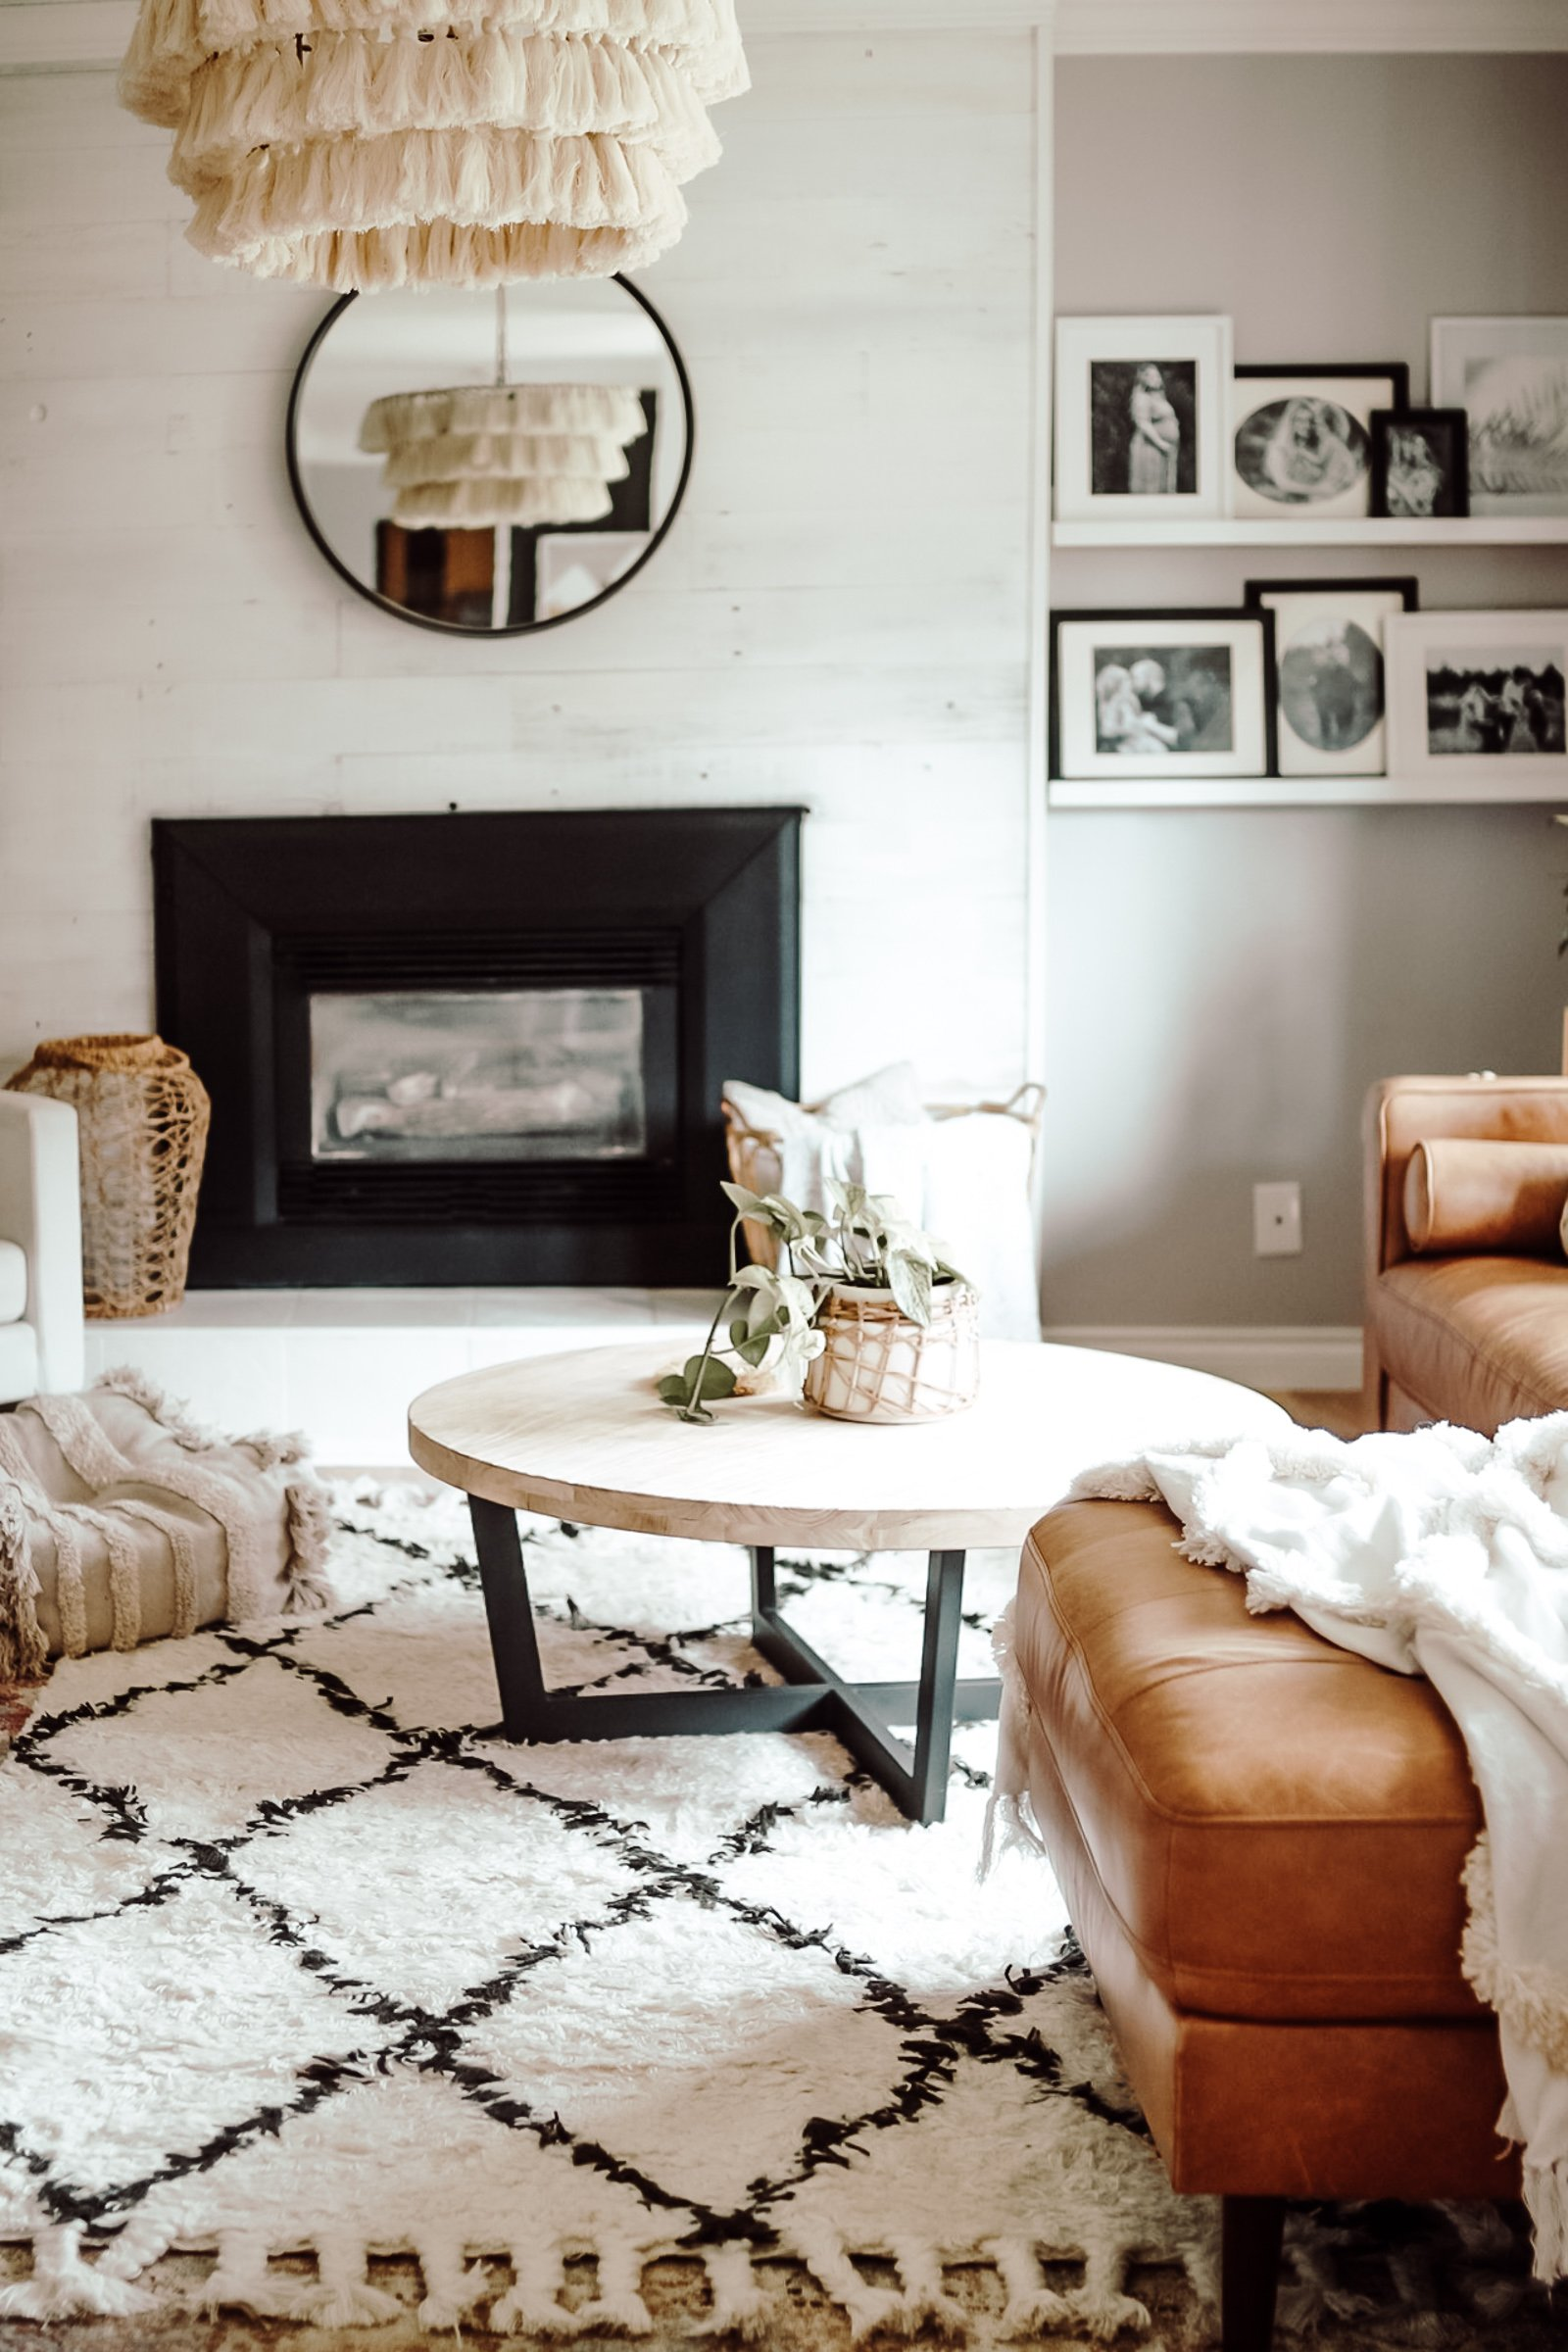 How To Modernize Your Living Room. How I Turned My Farmhouse Living Room Into A Modern Bohemian Living Room. Simple Free Tricks